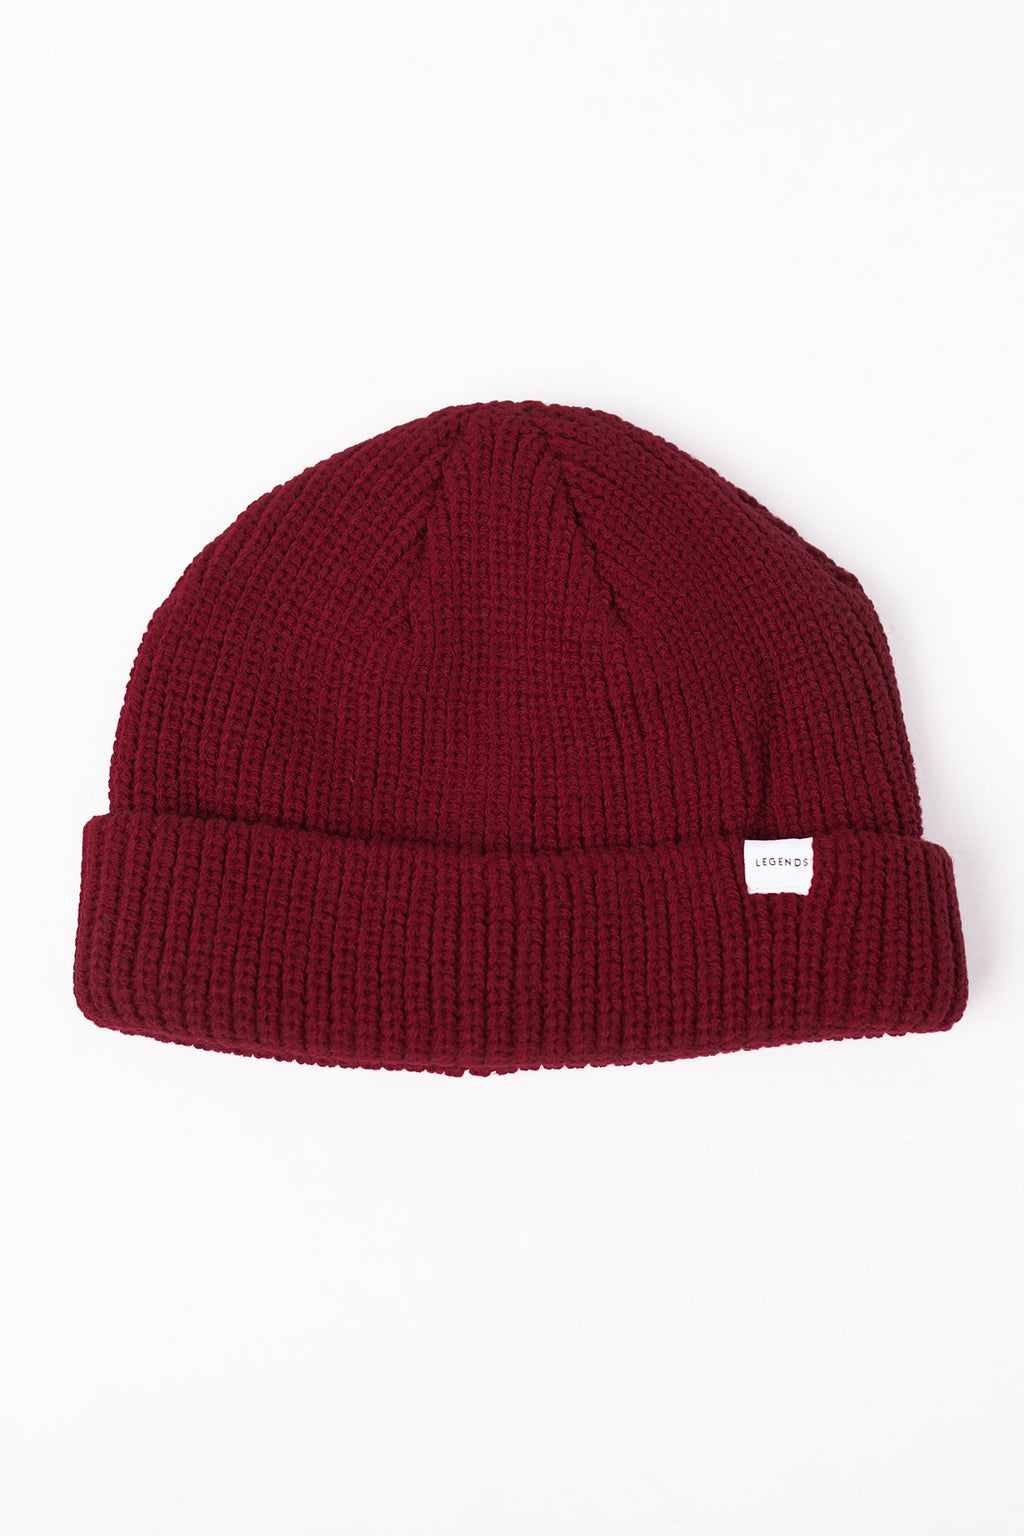 Northern Beanie - Red Wine